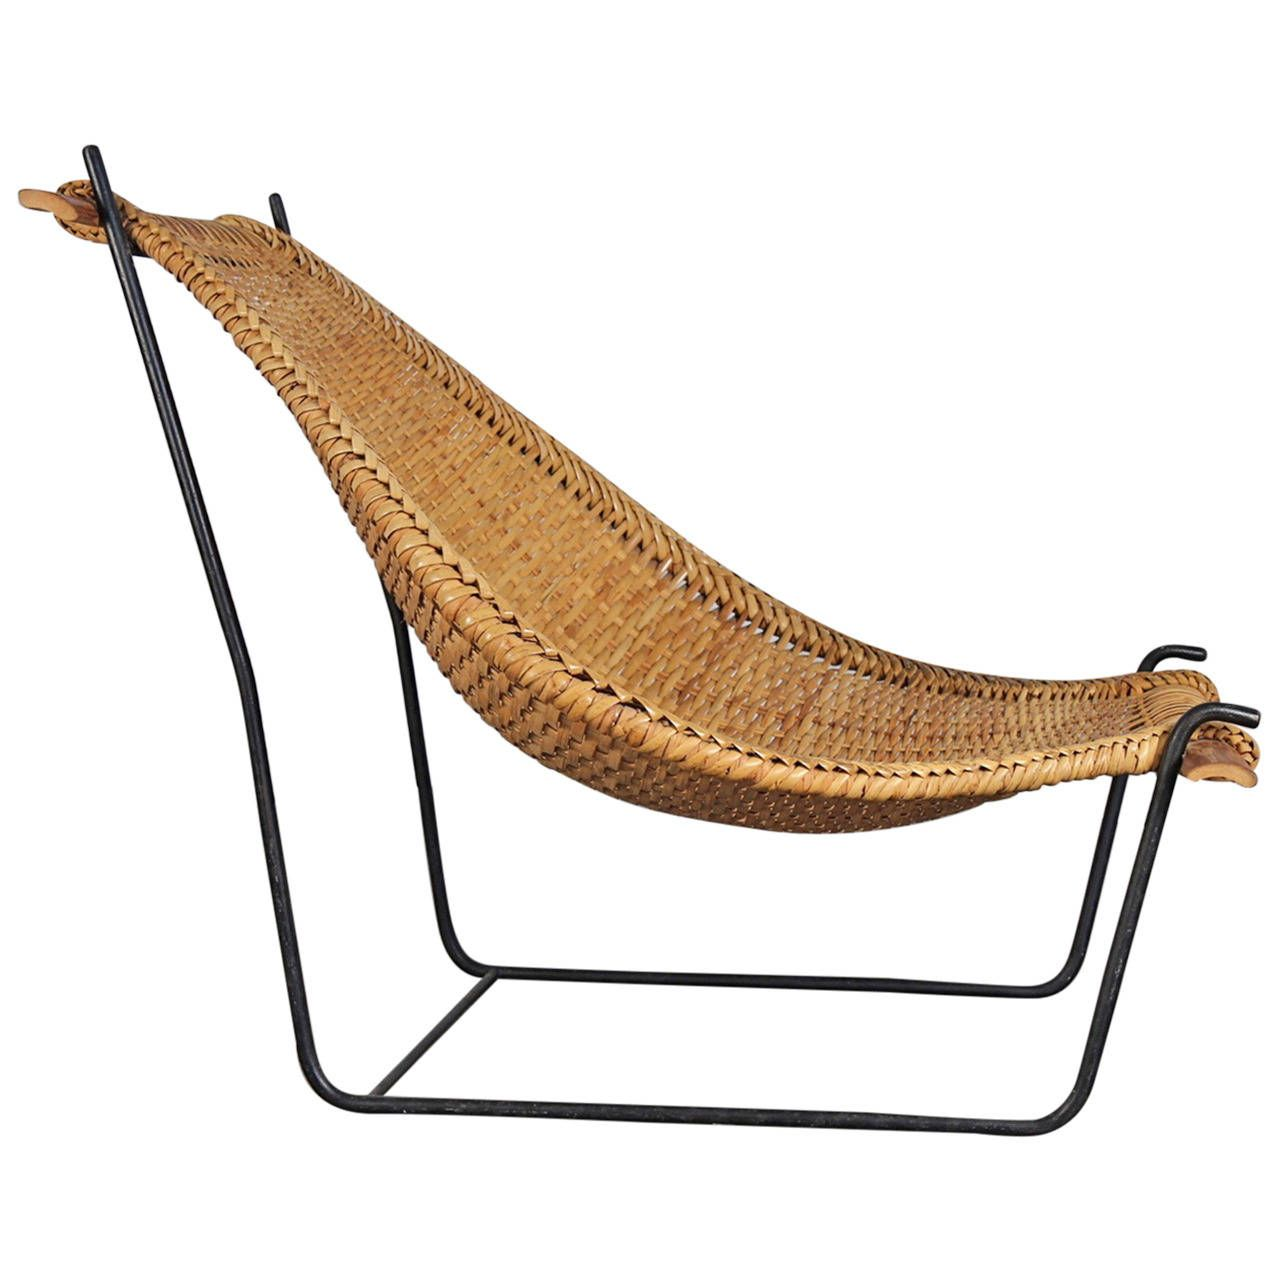 Danny Ho Fong Rattan Lounge Chair | Modern lounge, Rattan and ...